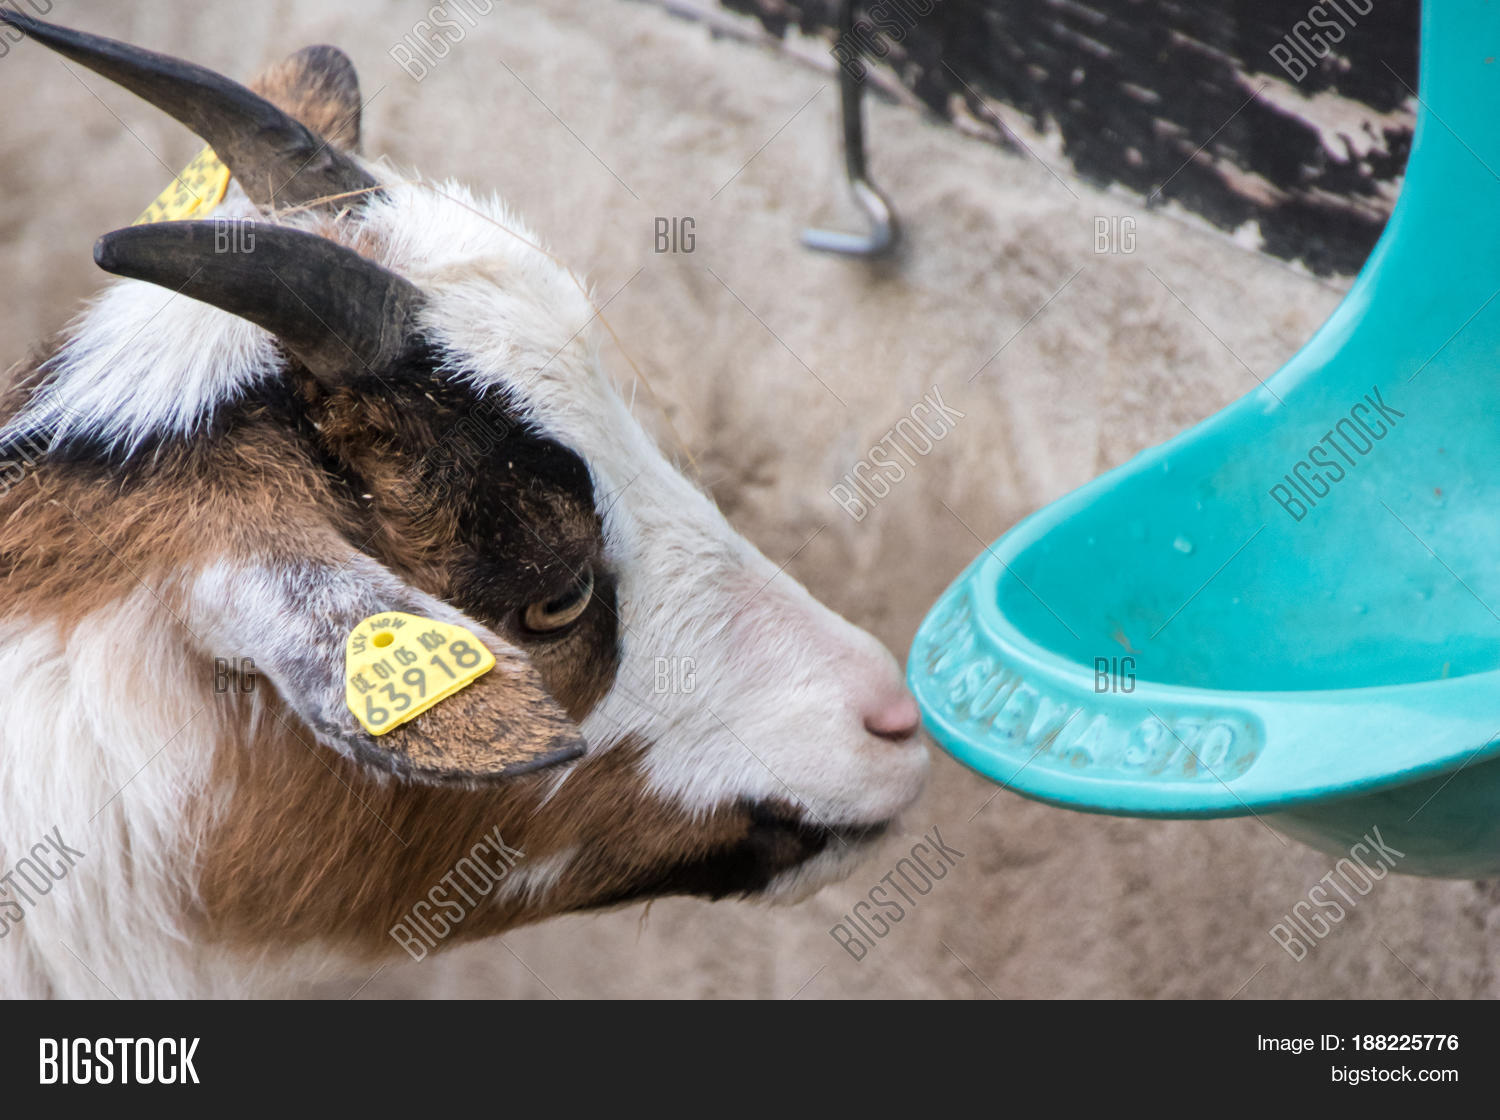 head young baby goat image photo free trial bigstock